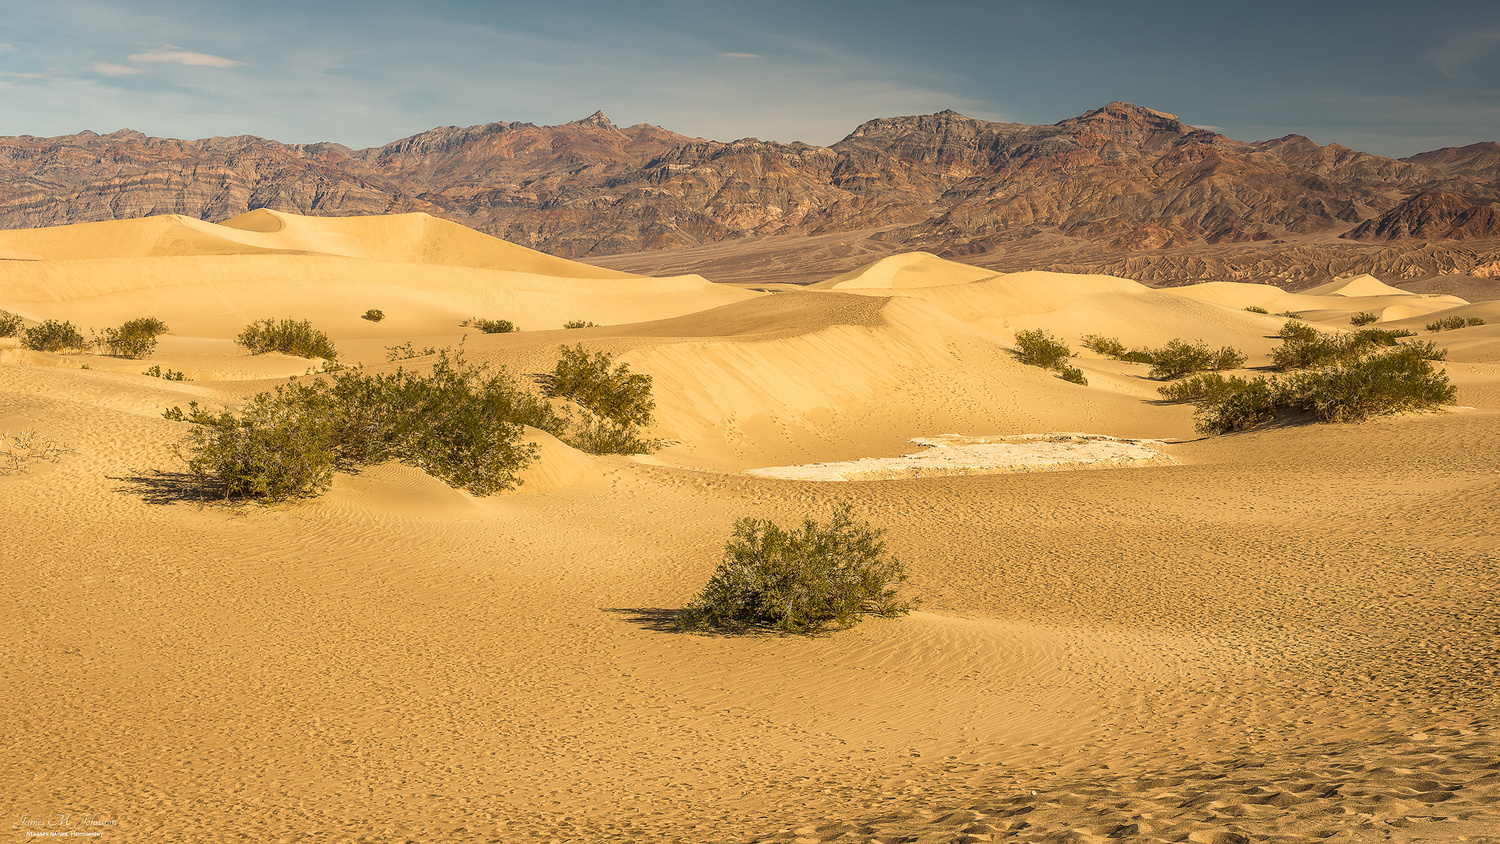 Mesquite Flats Sand Dunes by James Johnston